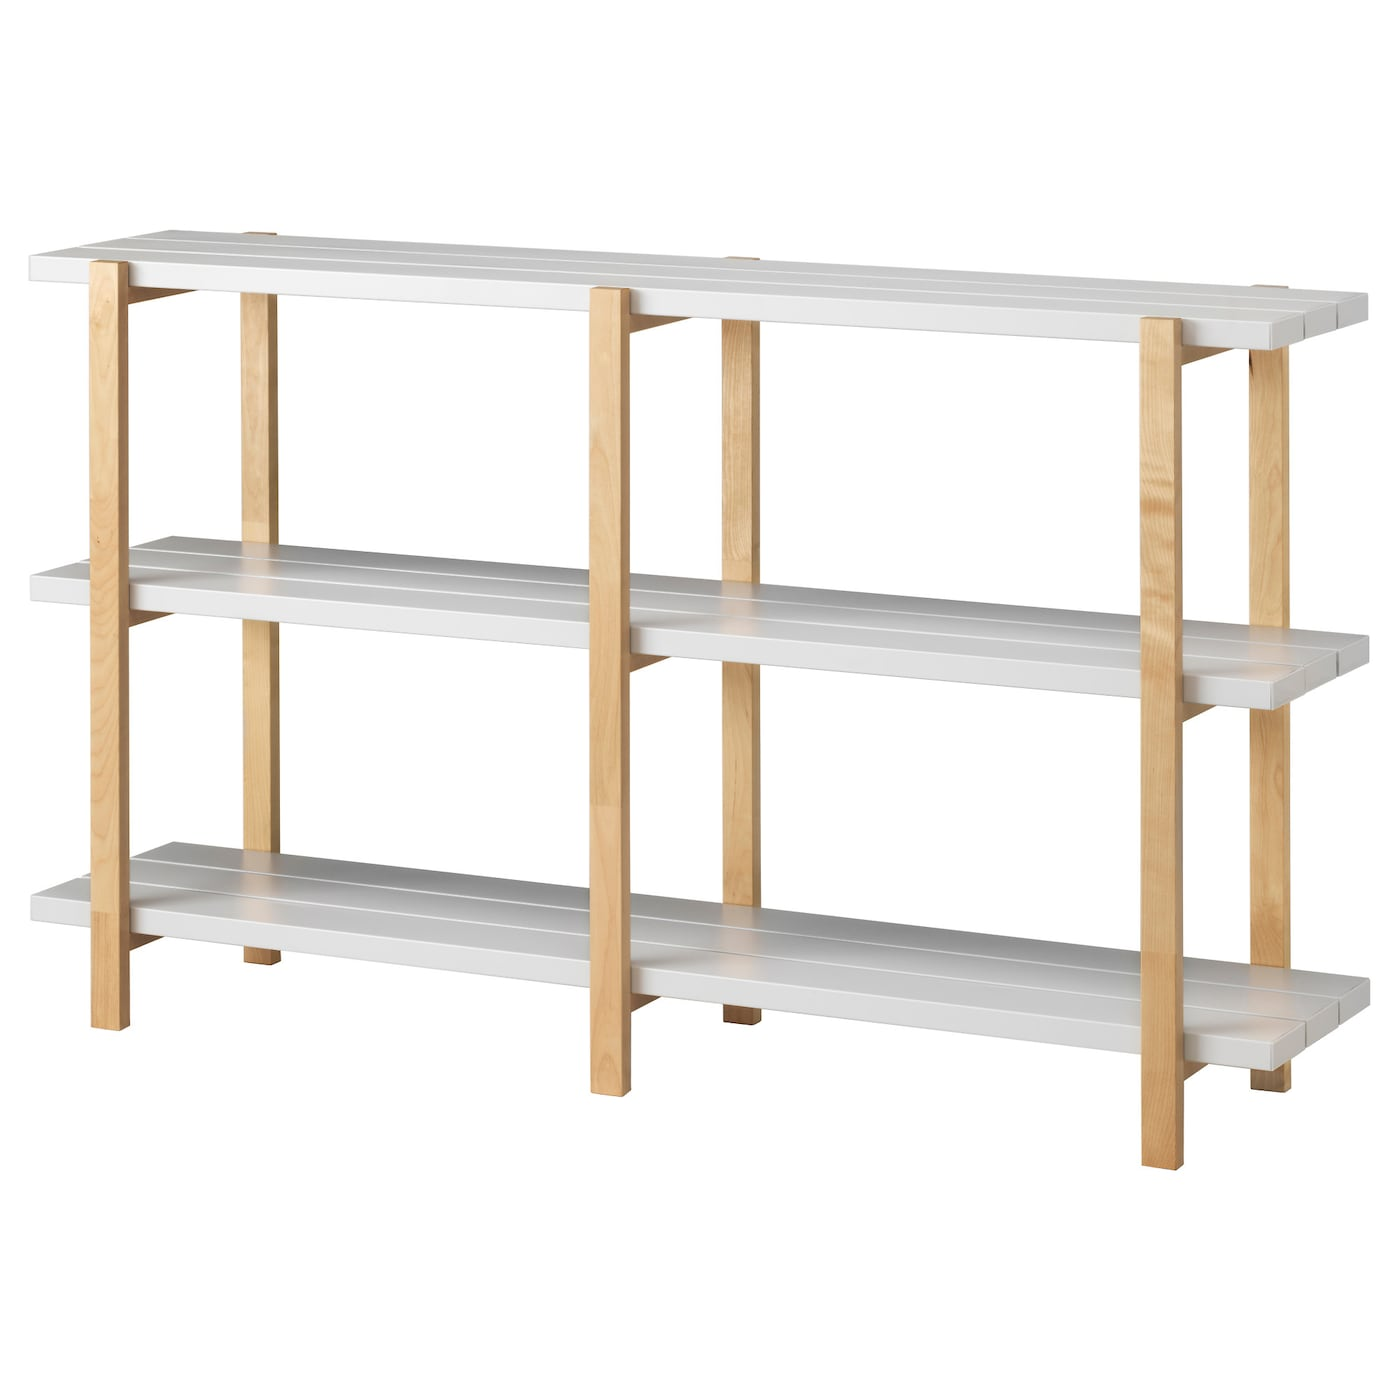 Ikea Ypperlig Shelving Unit Solid Birch Is A Hard Wearing Natural Material